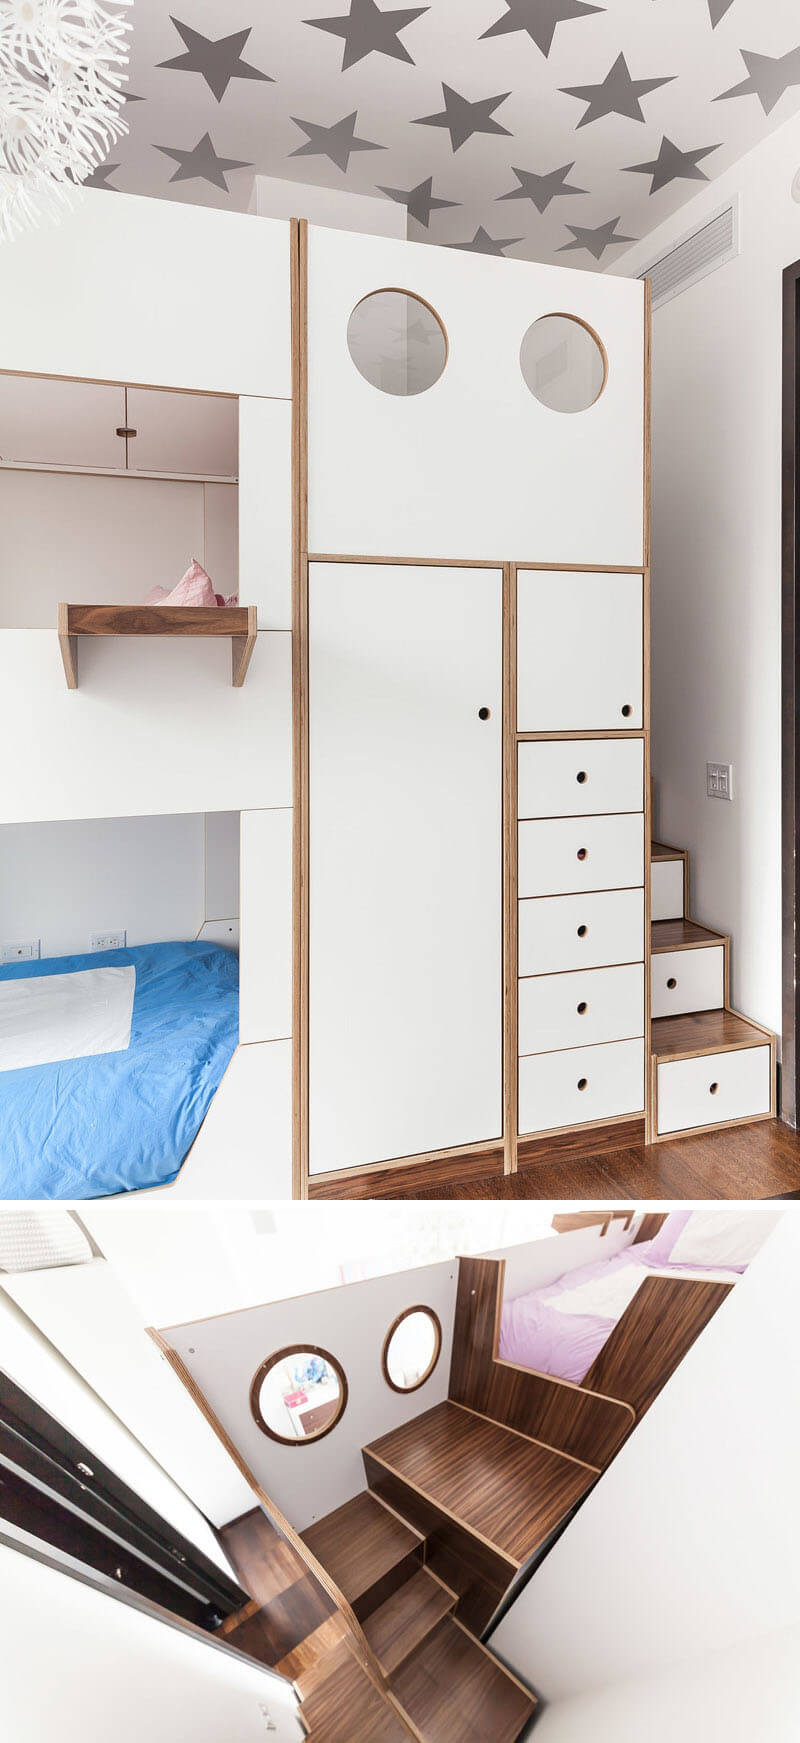 This Triple Bunk Bed Was Designed With Storage And Stairs-4